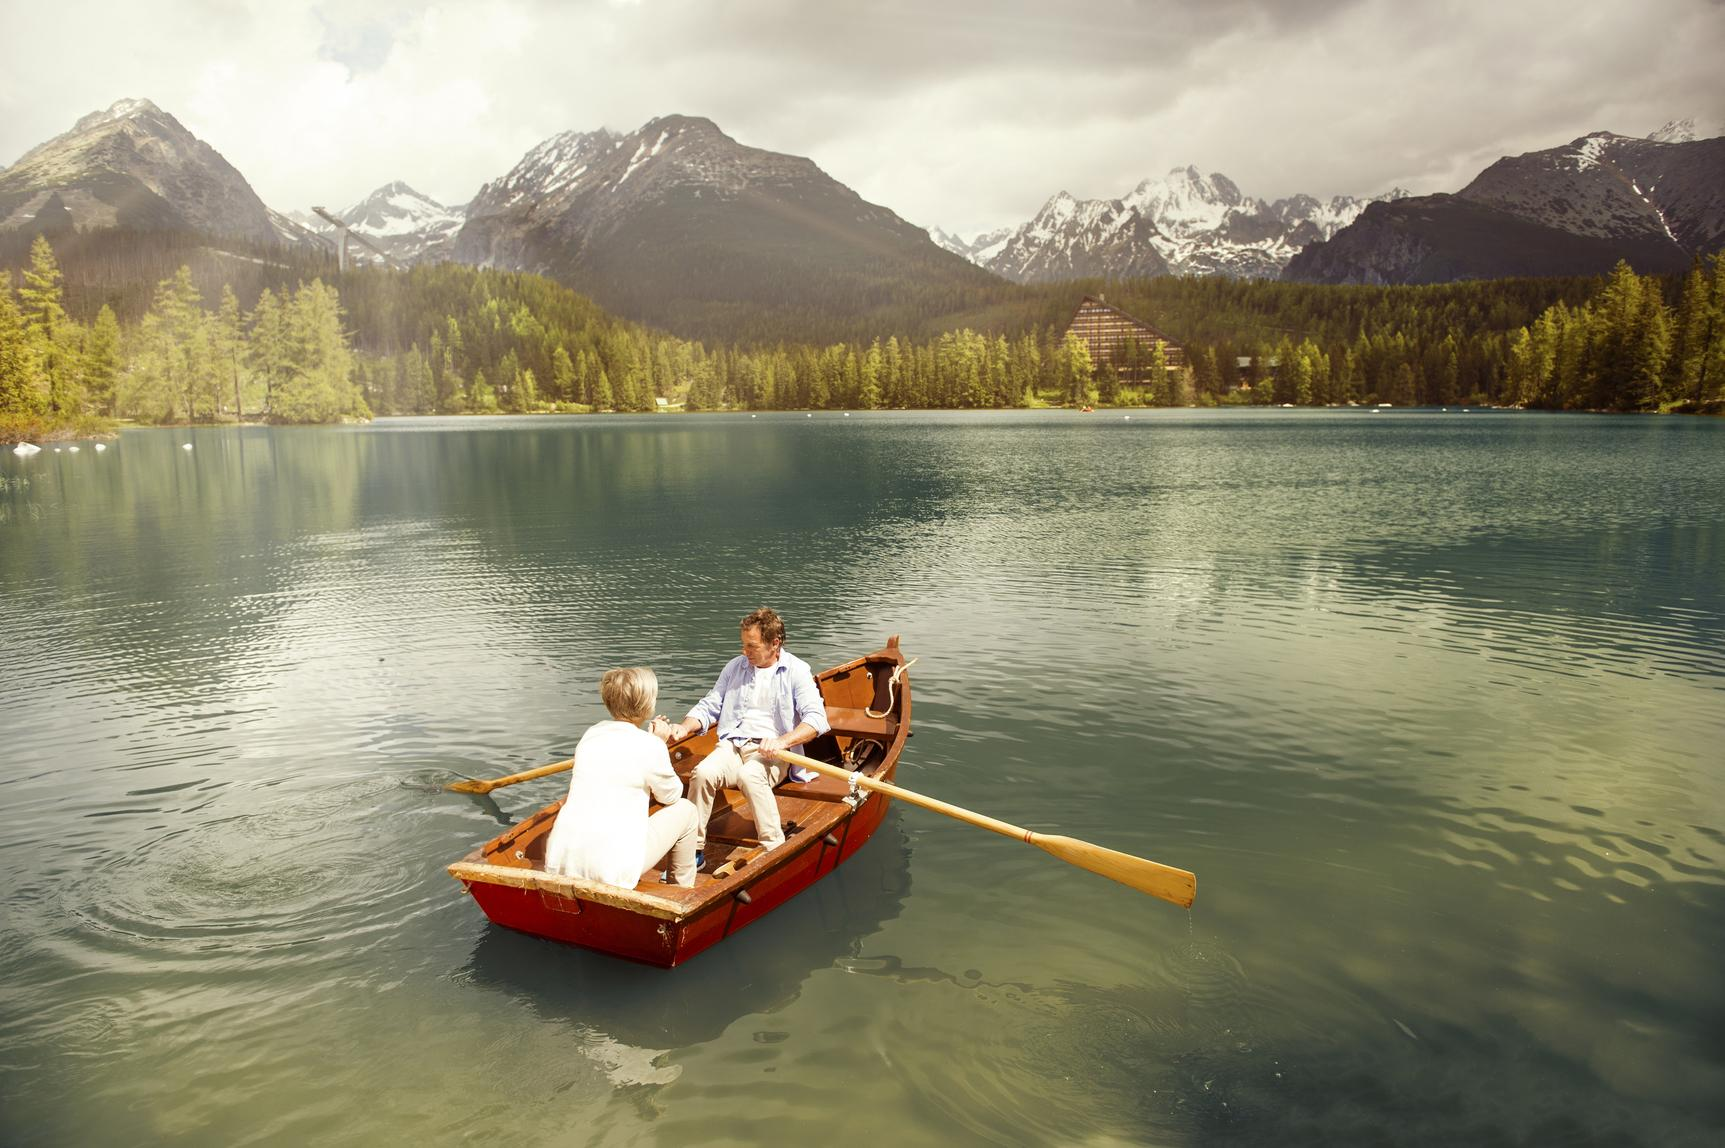 Couple paddling on boat with mountains in the distance